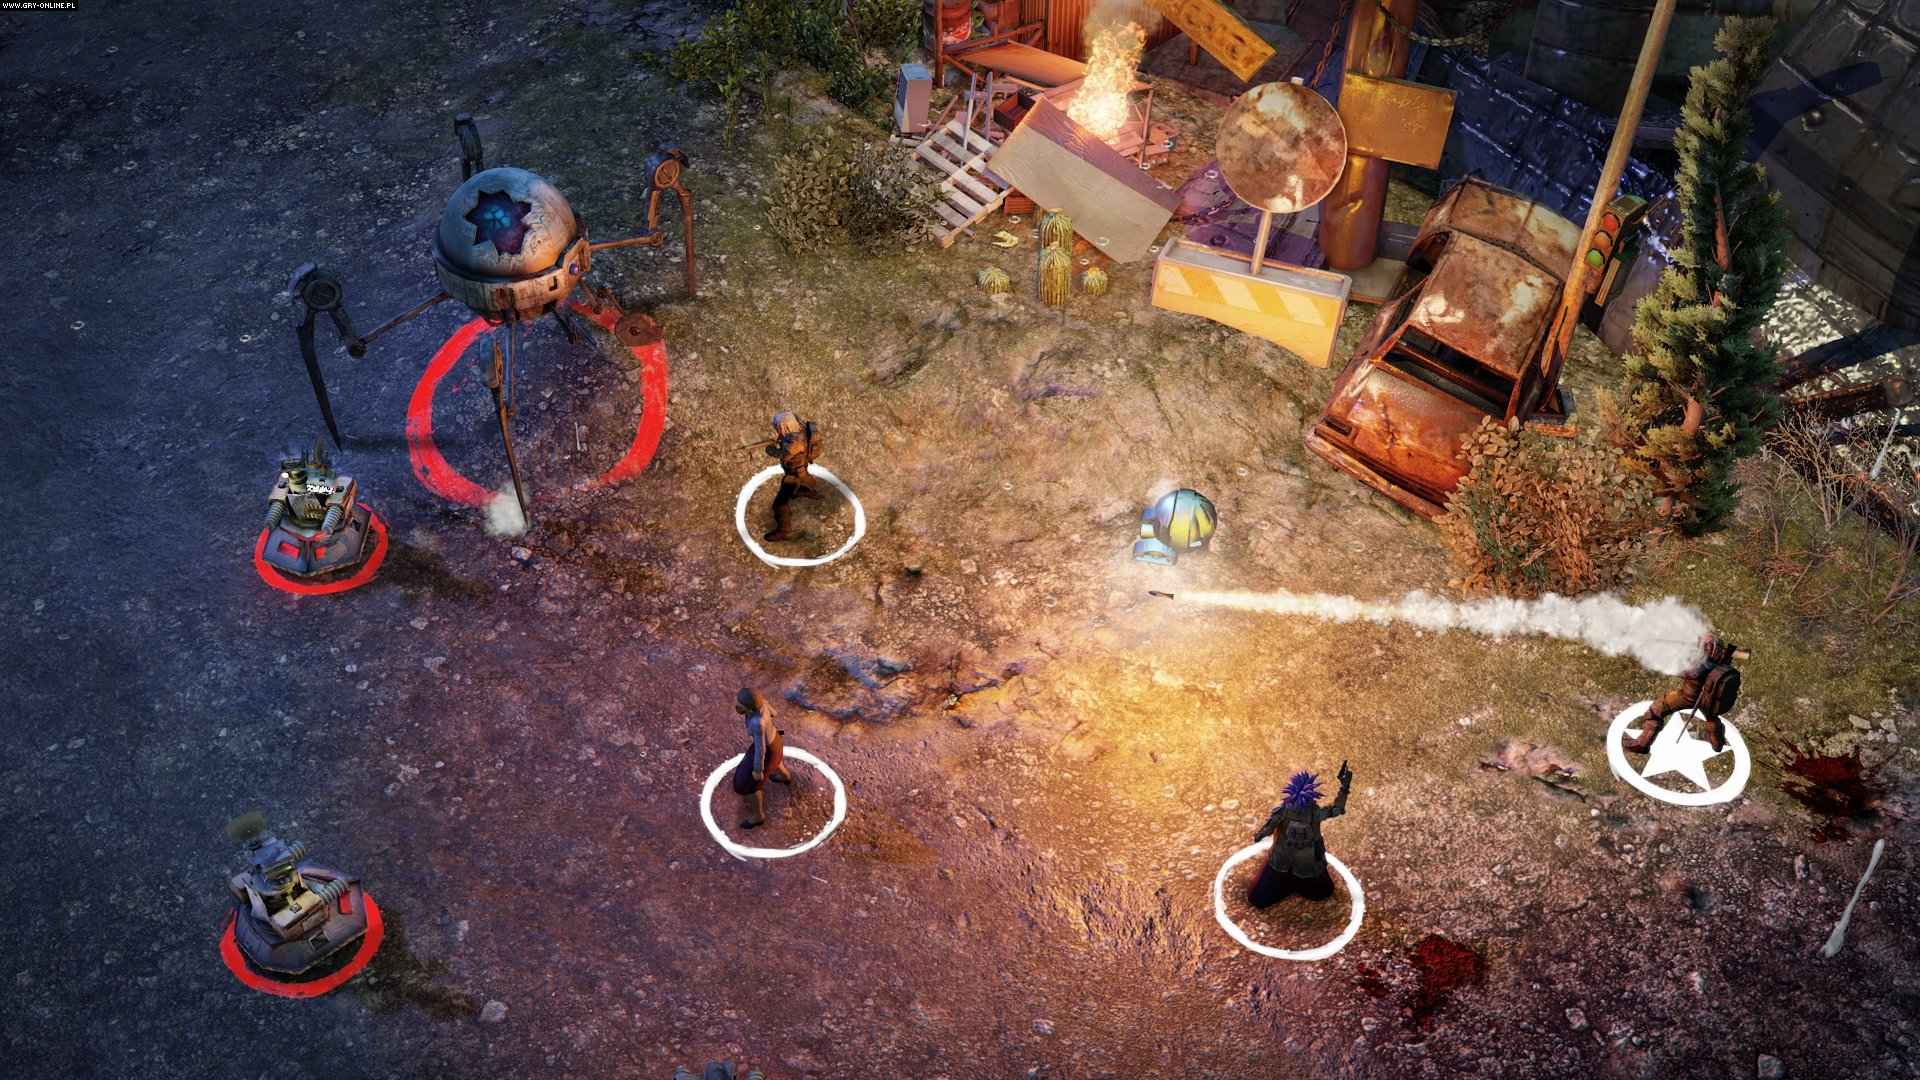 Wasteland 2 PC, PS4, XONE Games Image 7/42, inXile entertainment, Deep Silver / Koch Media